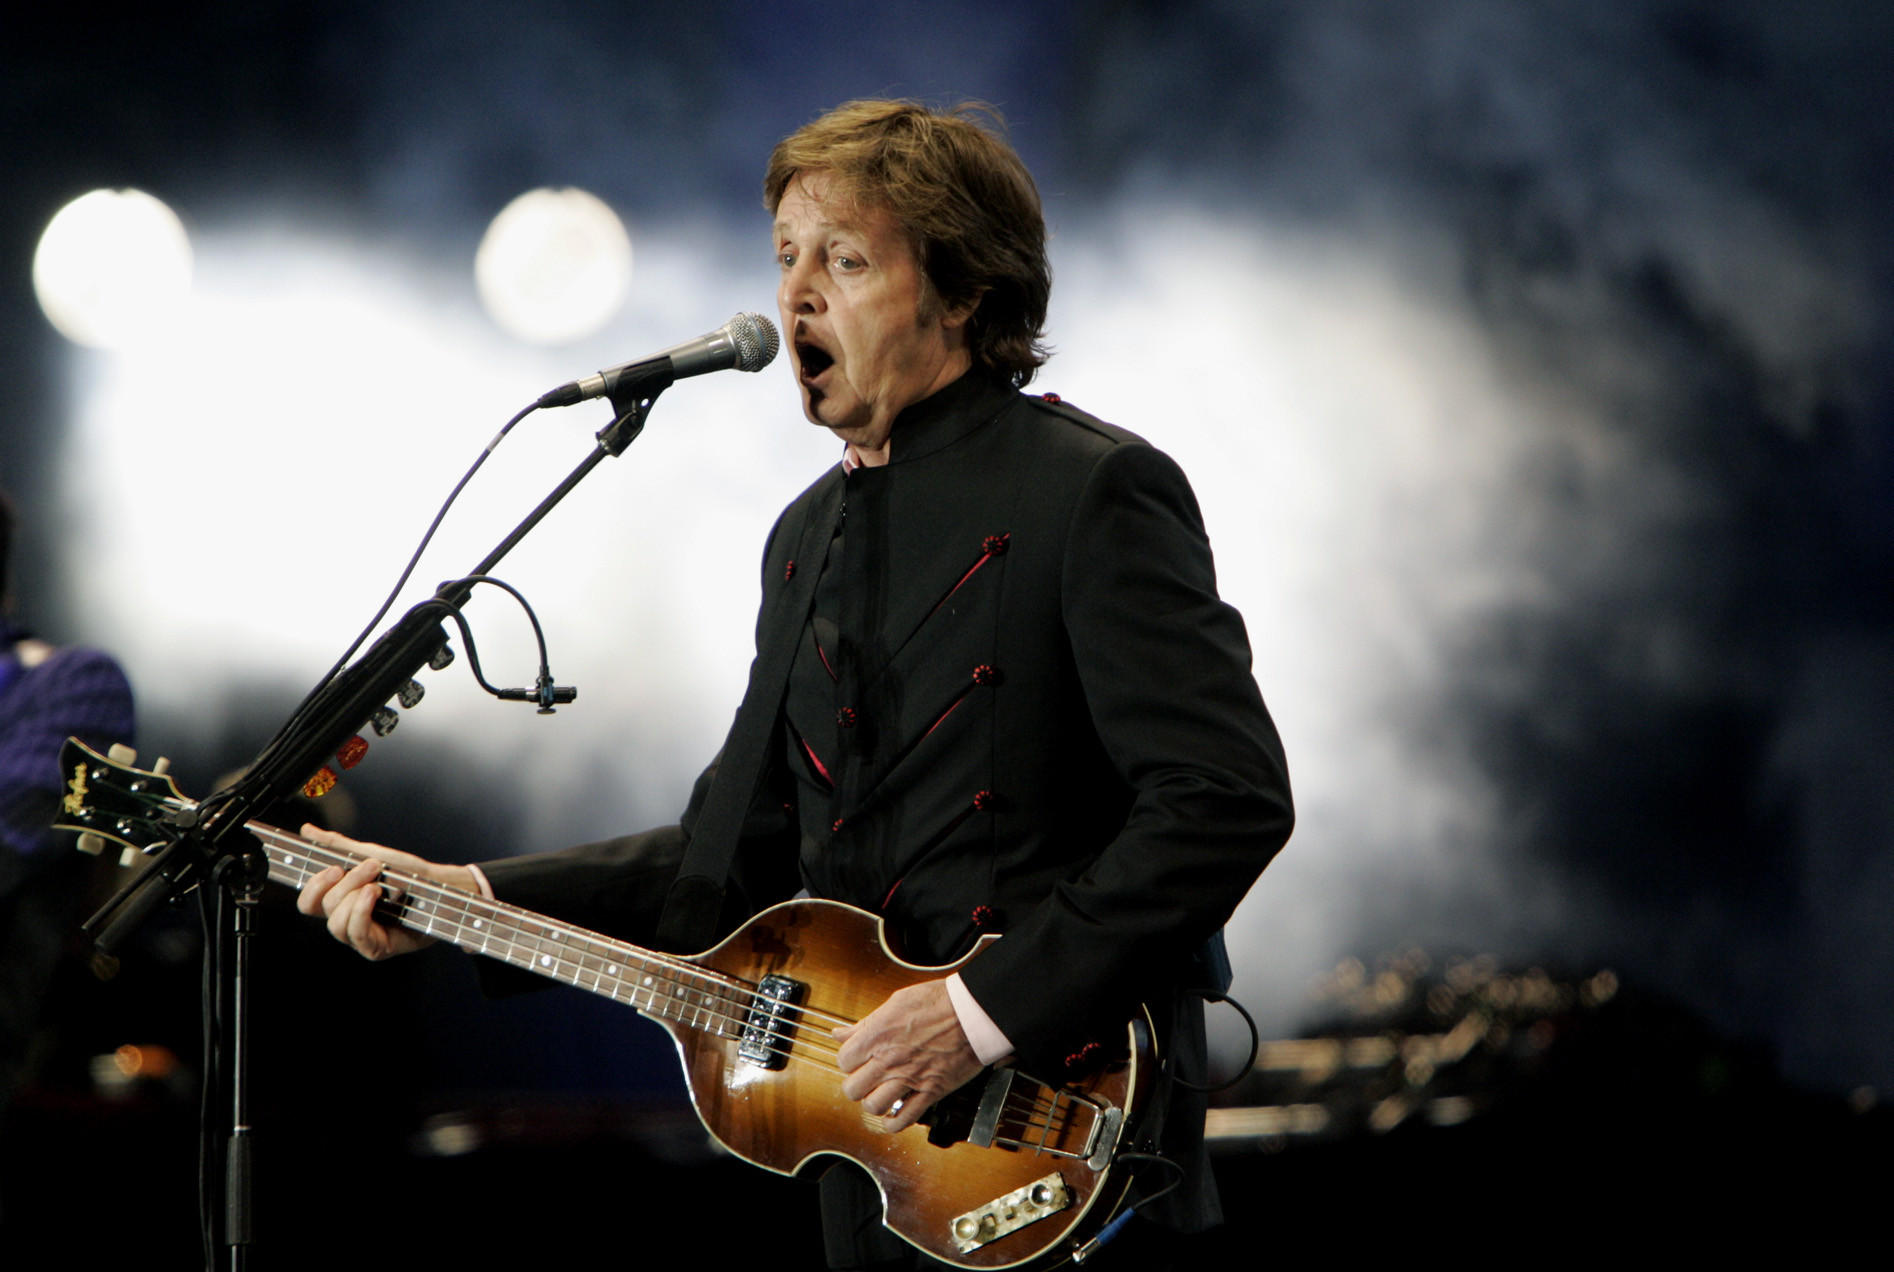 Paul McCartney at the Hollywood Bowl in 2010.